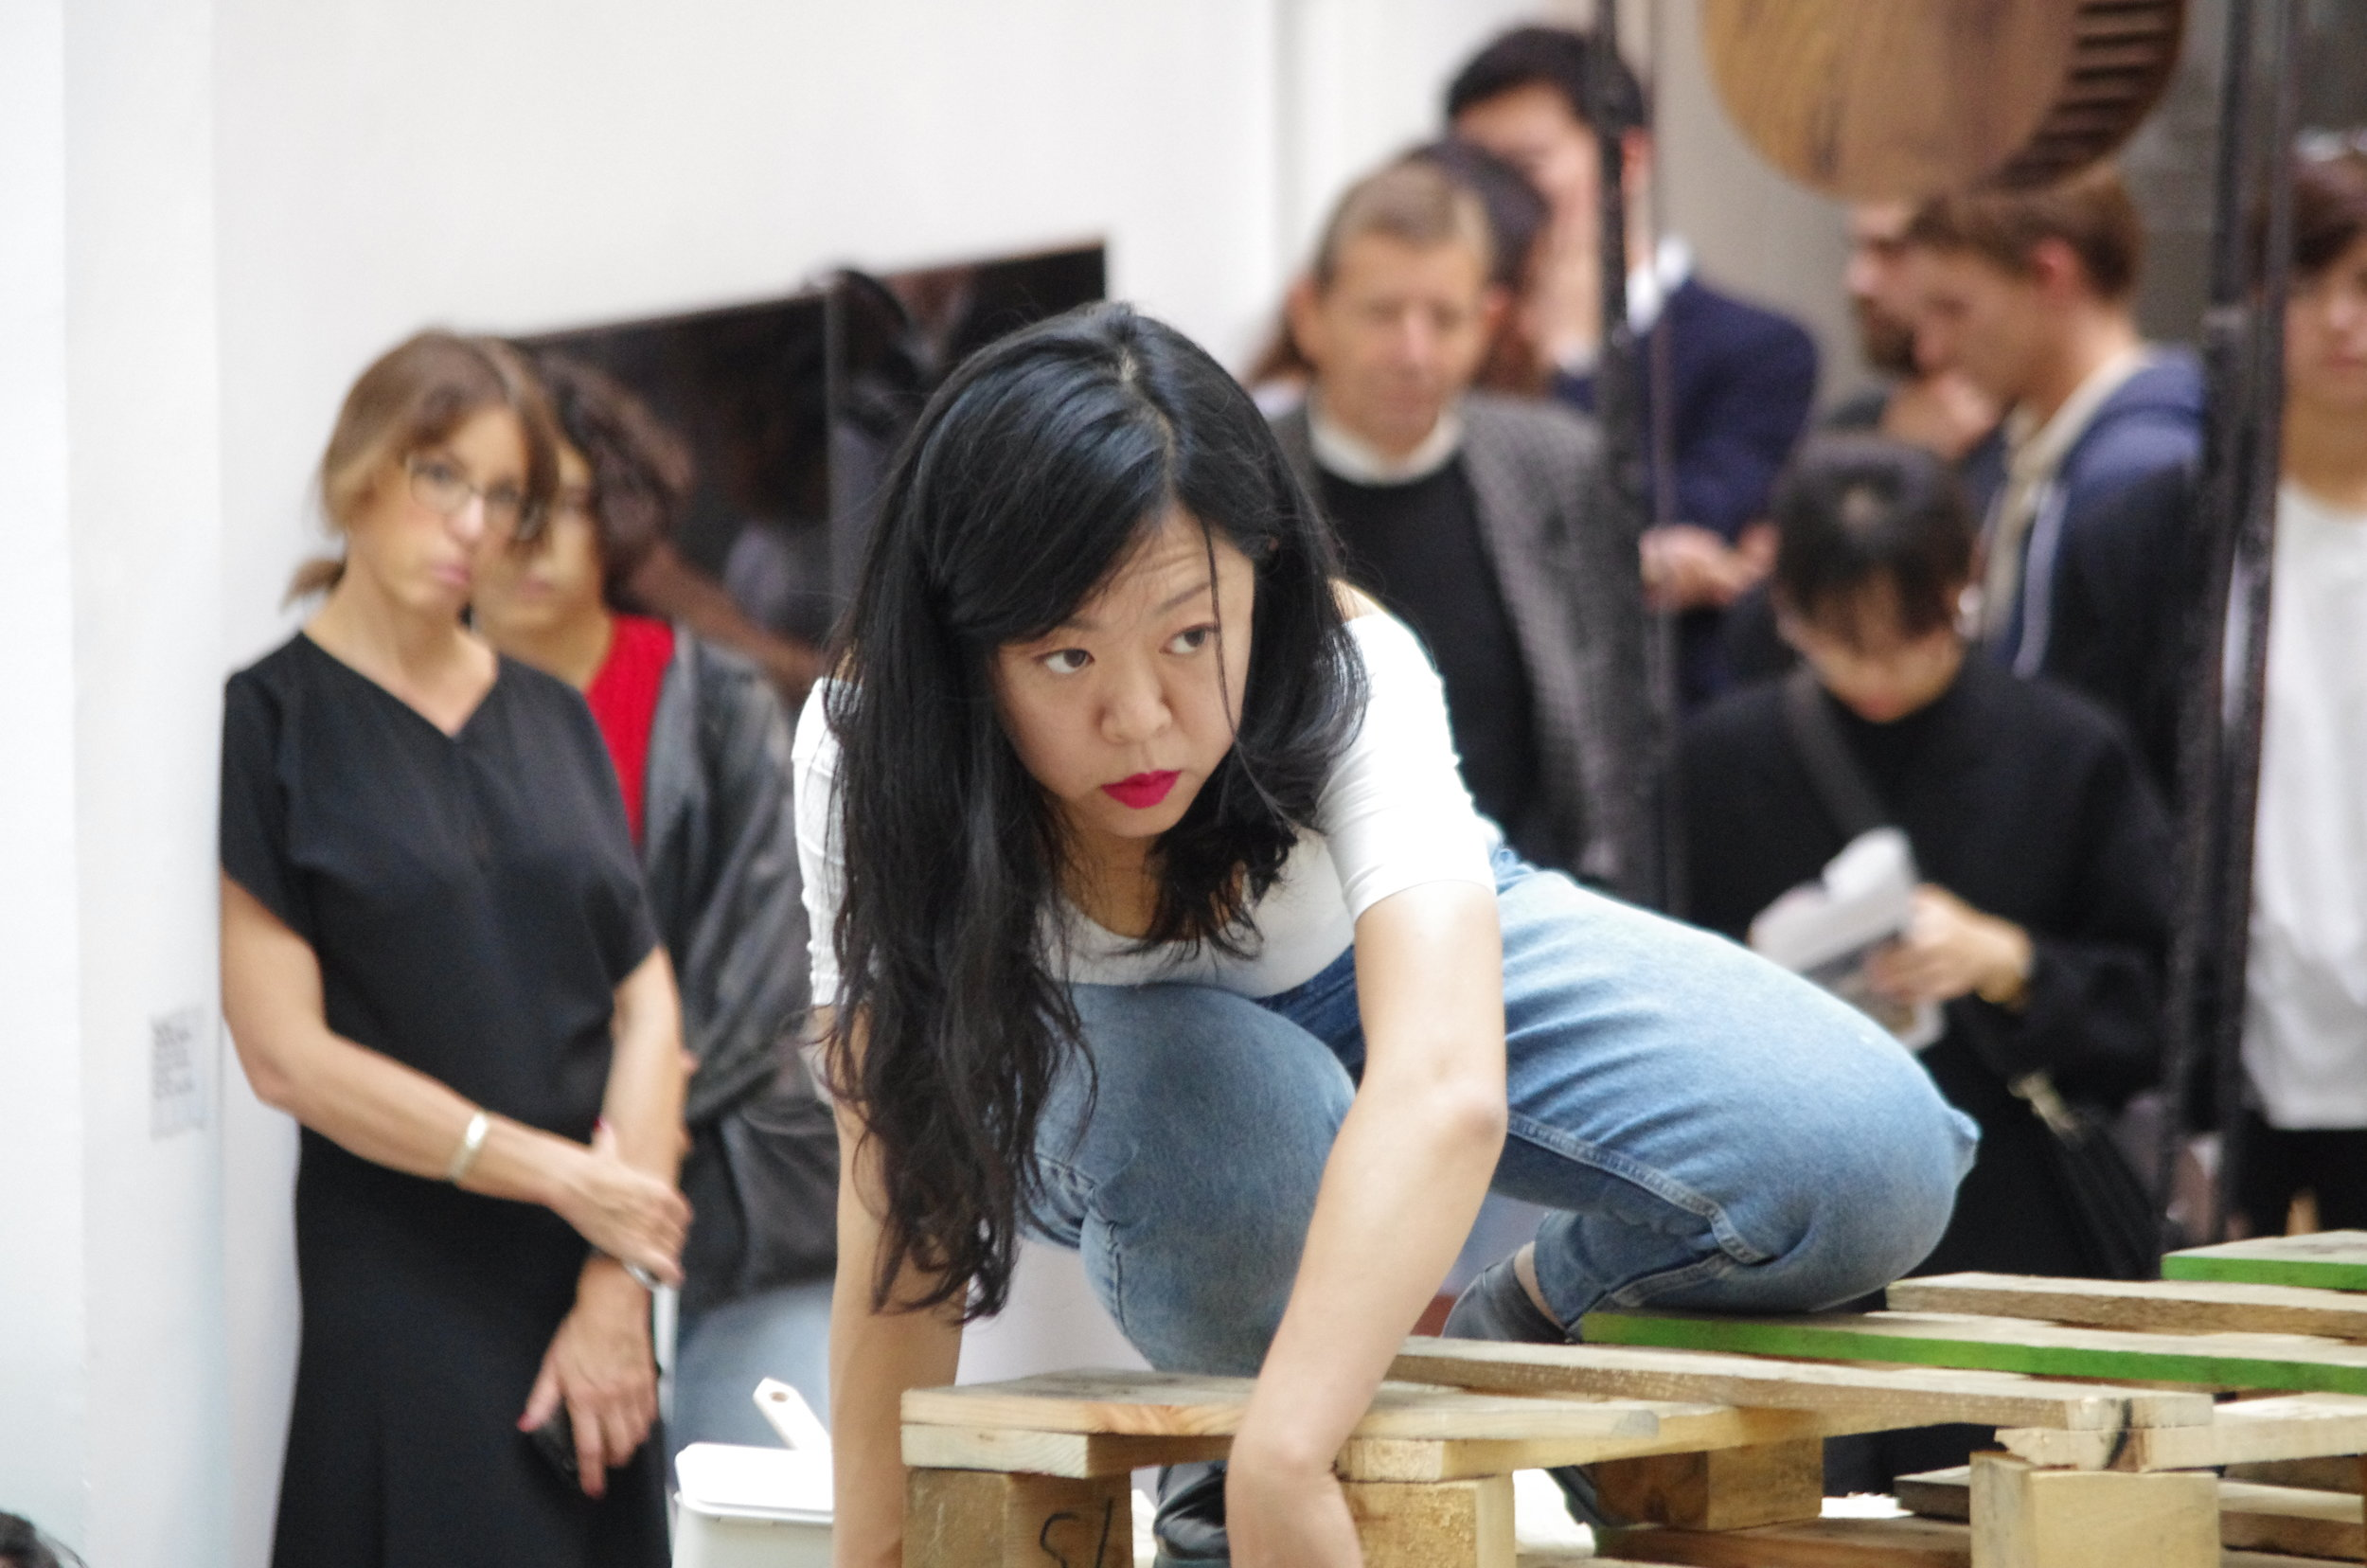 Till Then/Jusqu'à - Performance by Zhao Duan